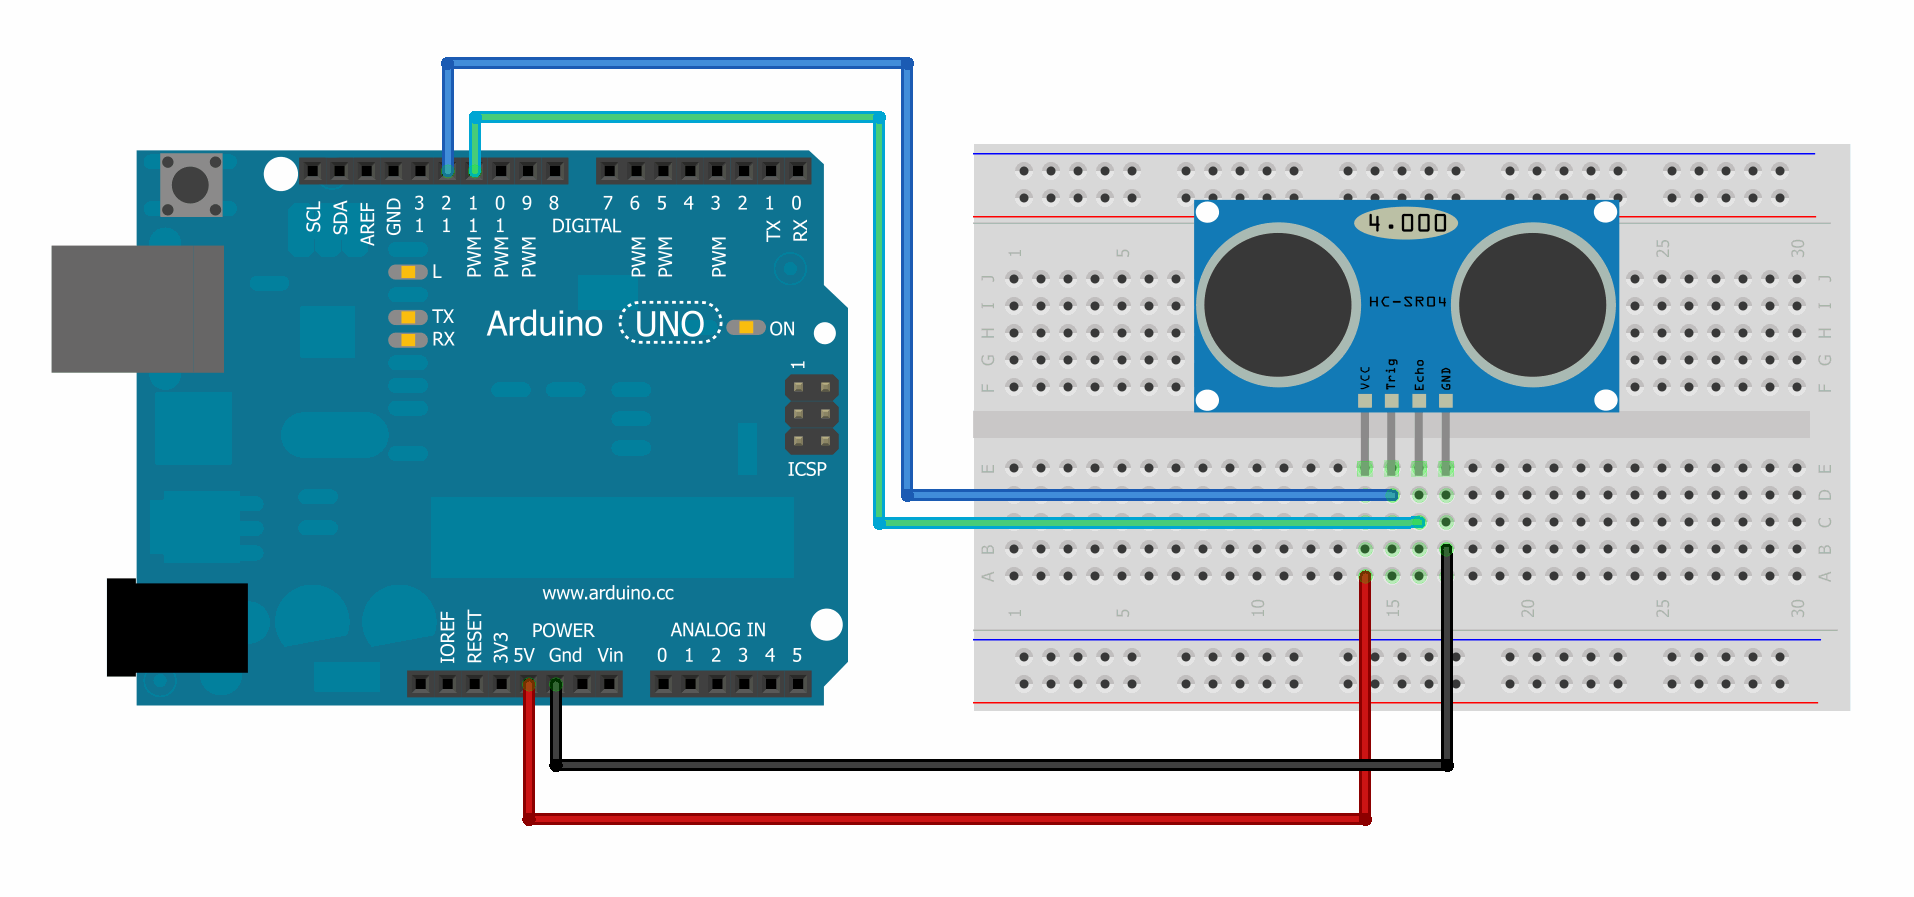 Ranging Detector Measuring Distance With Arduino